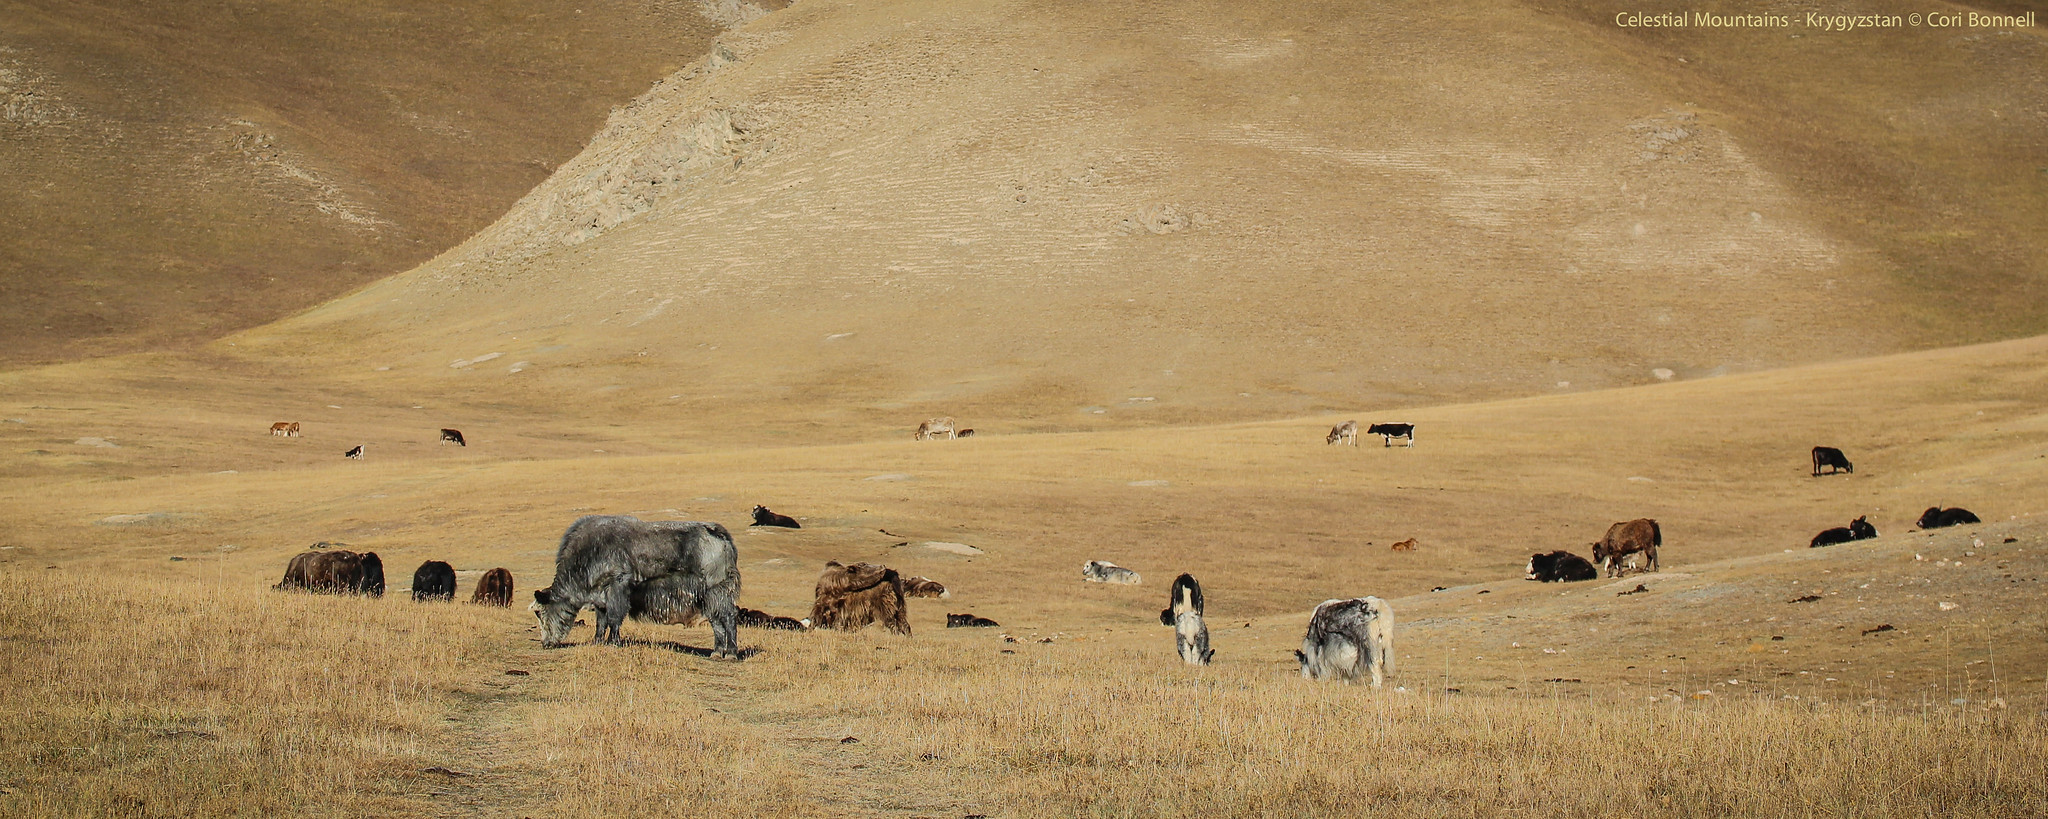 Yaks in the foothills of the Celestial Mountains